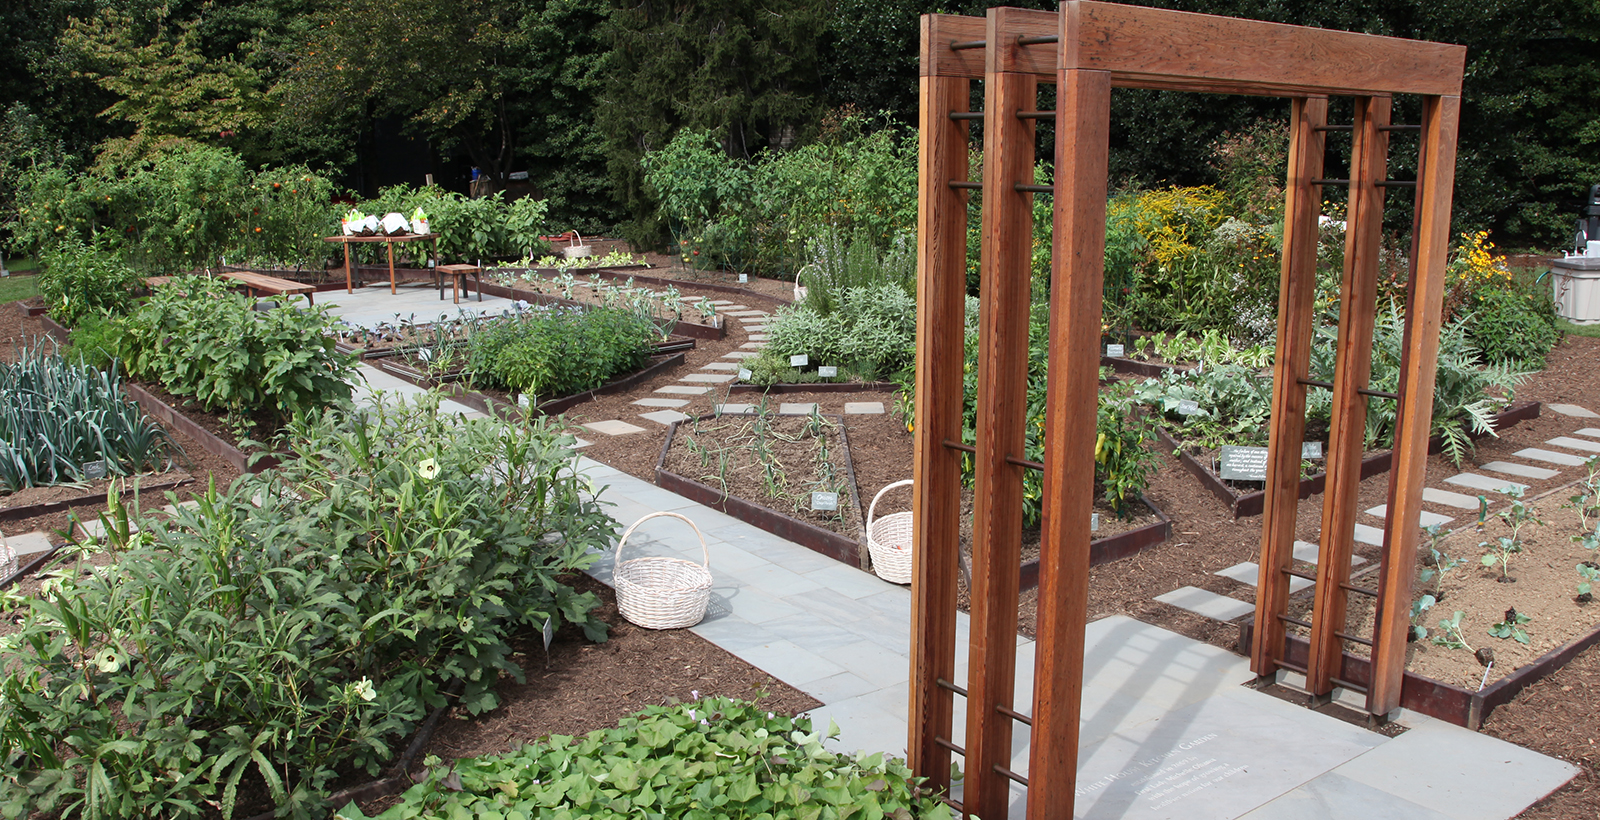 A Vegetable Garden With A Wood Trellis.